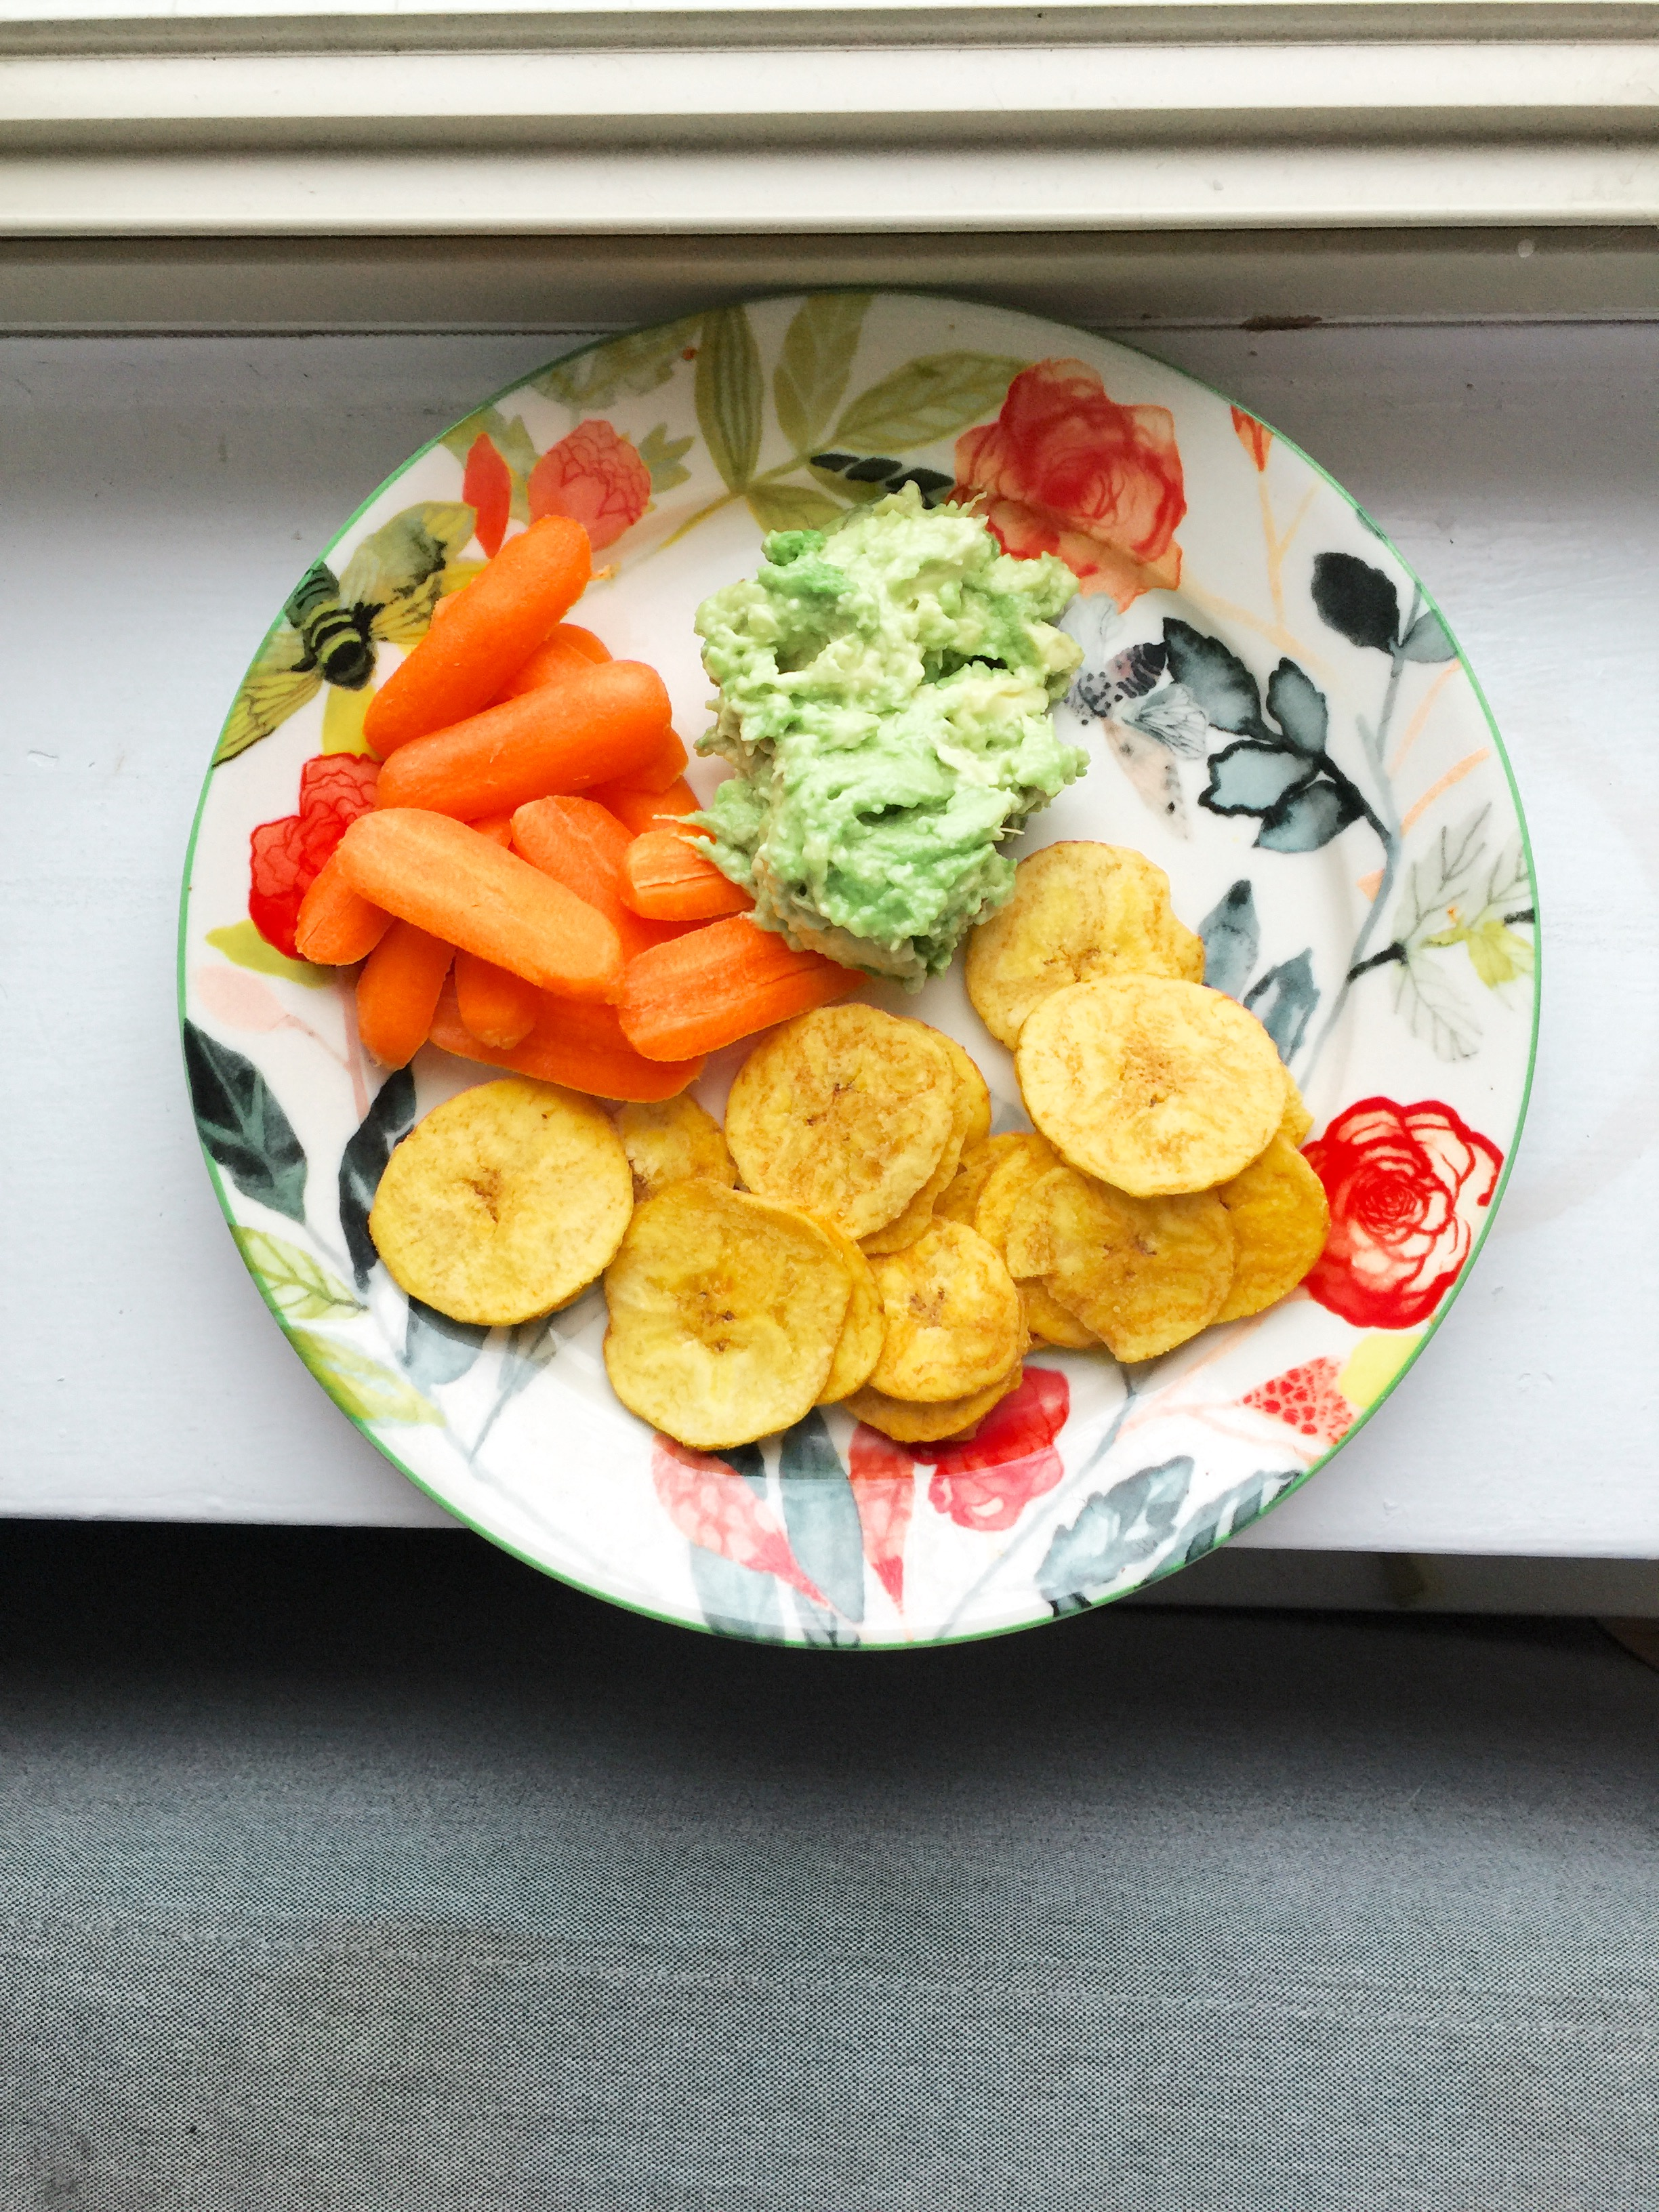 Carrots and plantain chips with guacamole